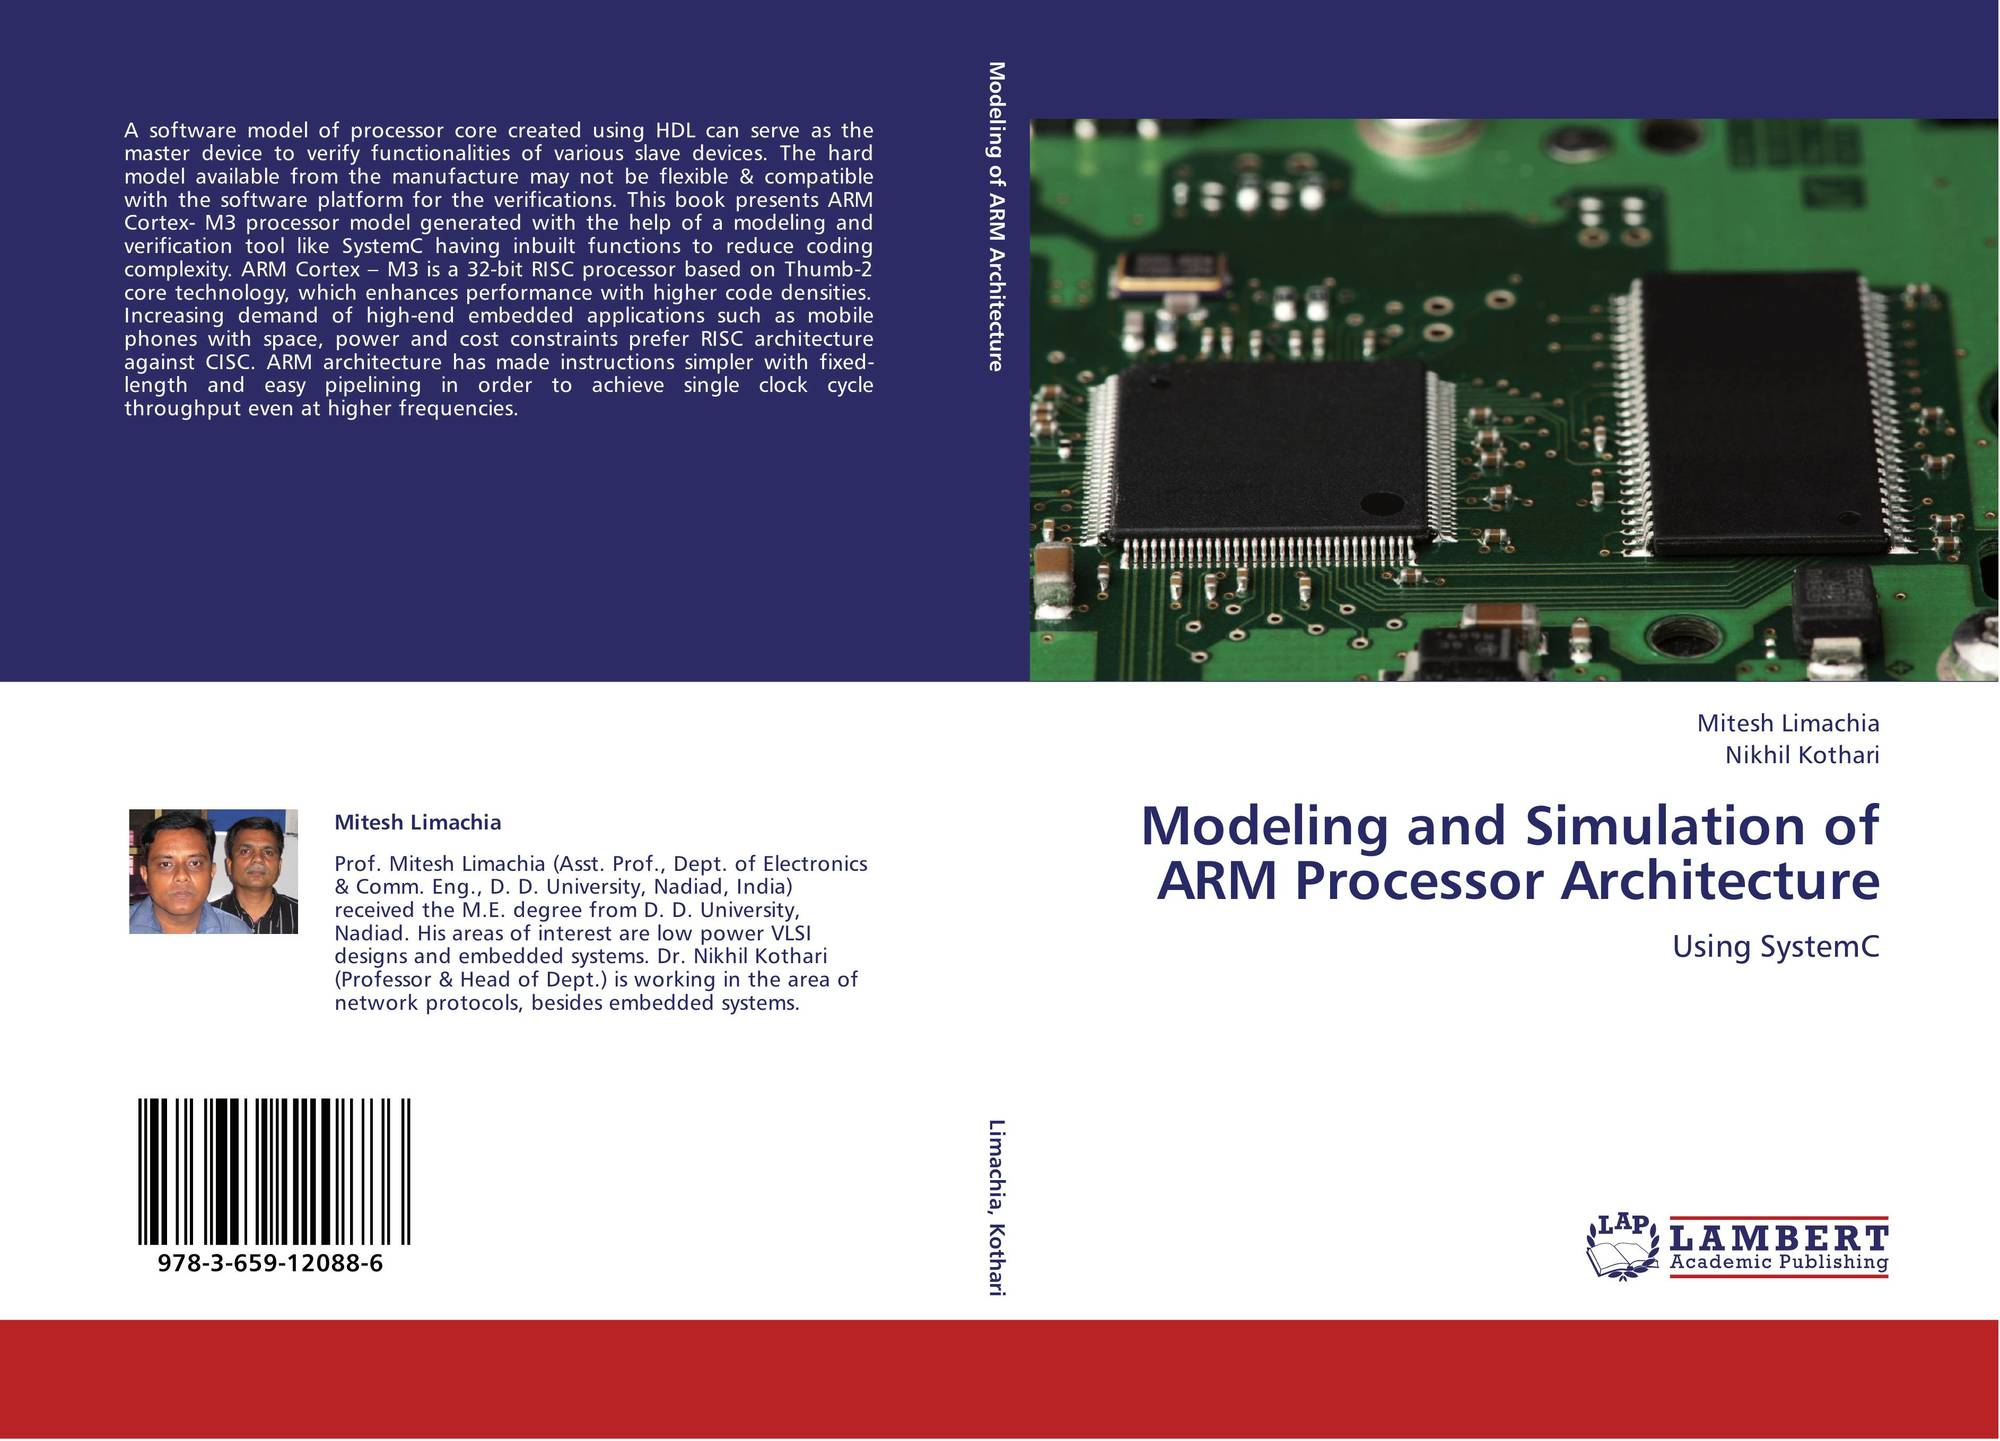 Bookcover Of Modeling And Simulation Of ARM Processor Architecture. Omni  Badge 9307e2201e5f762643a64561af3456be64a87707602f96b92ef18a9bbcada116